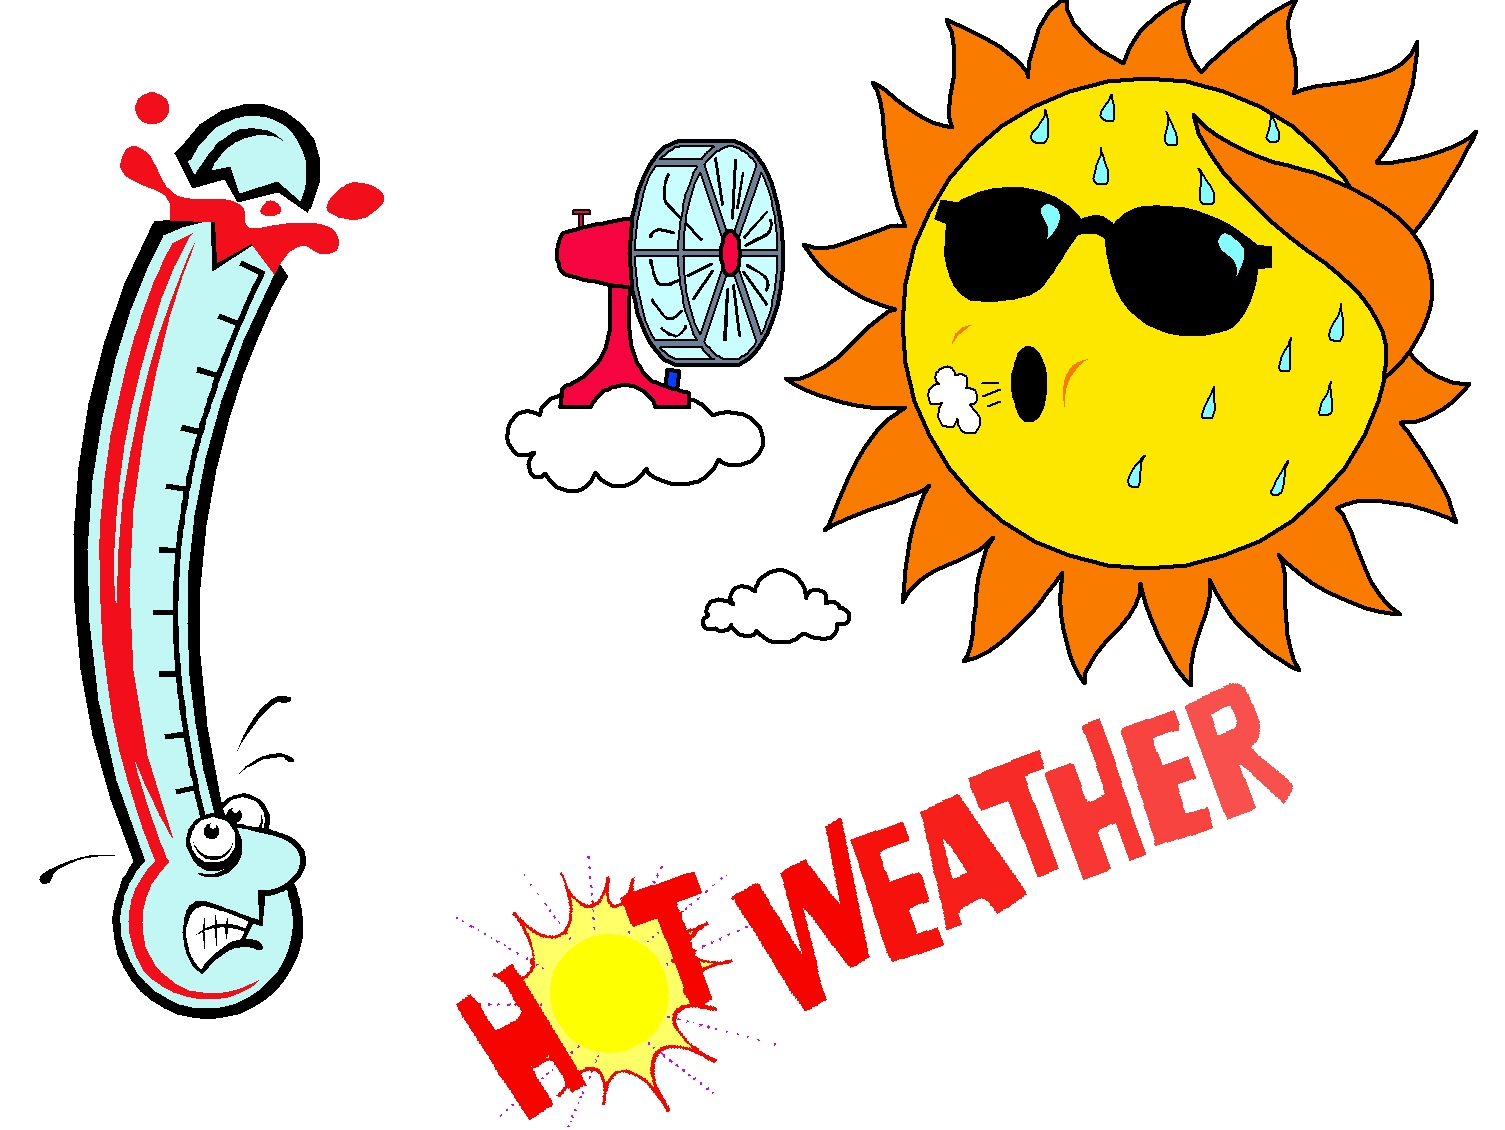 Dry Weather Clip Art Weather related stories &